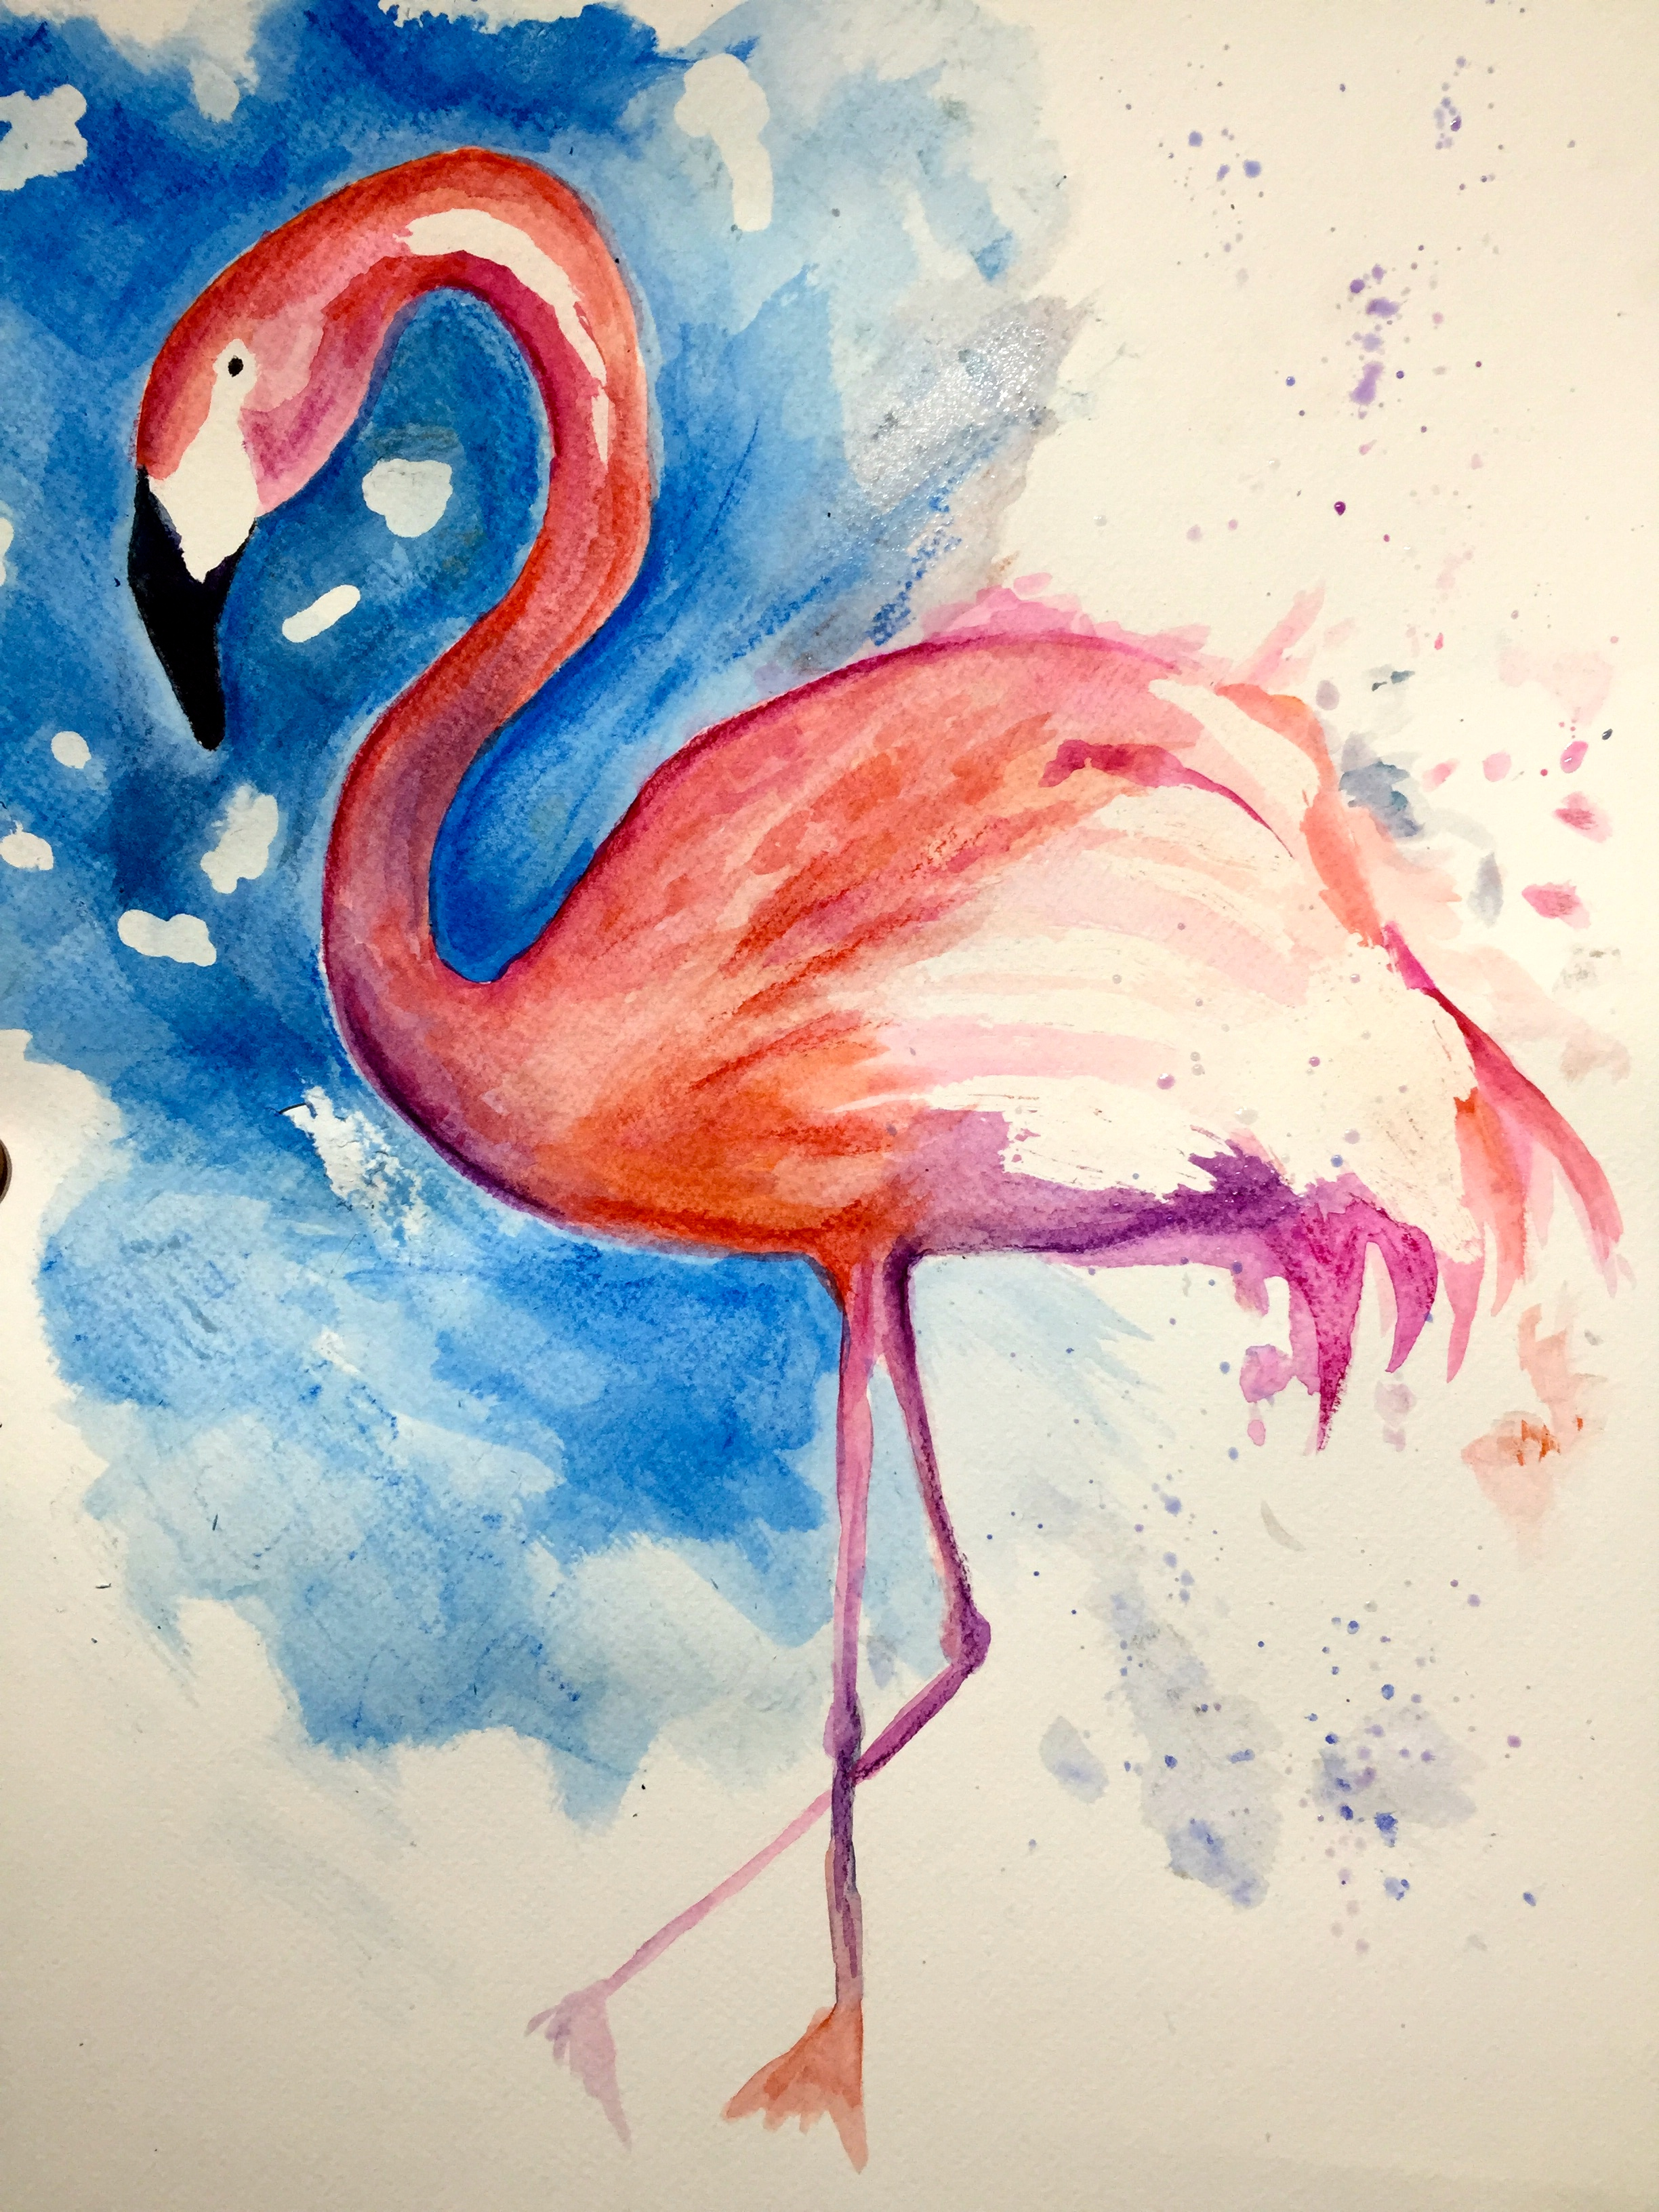 watercolour with masking fluid